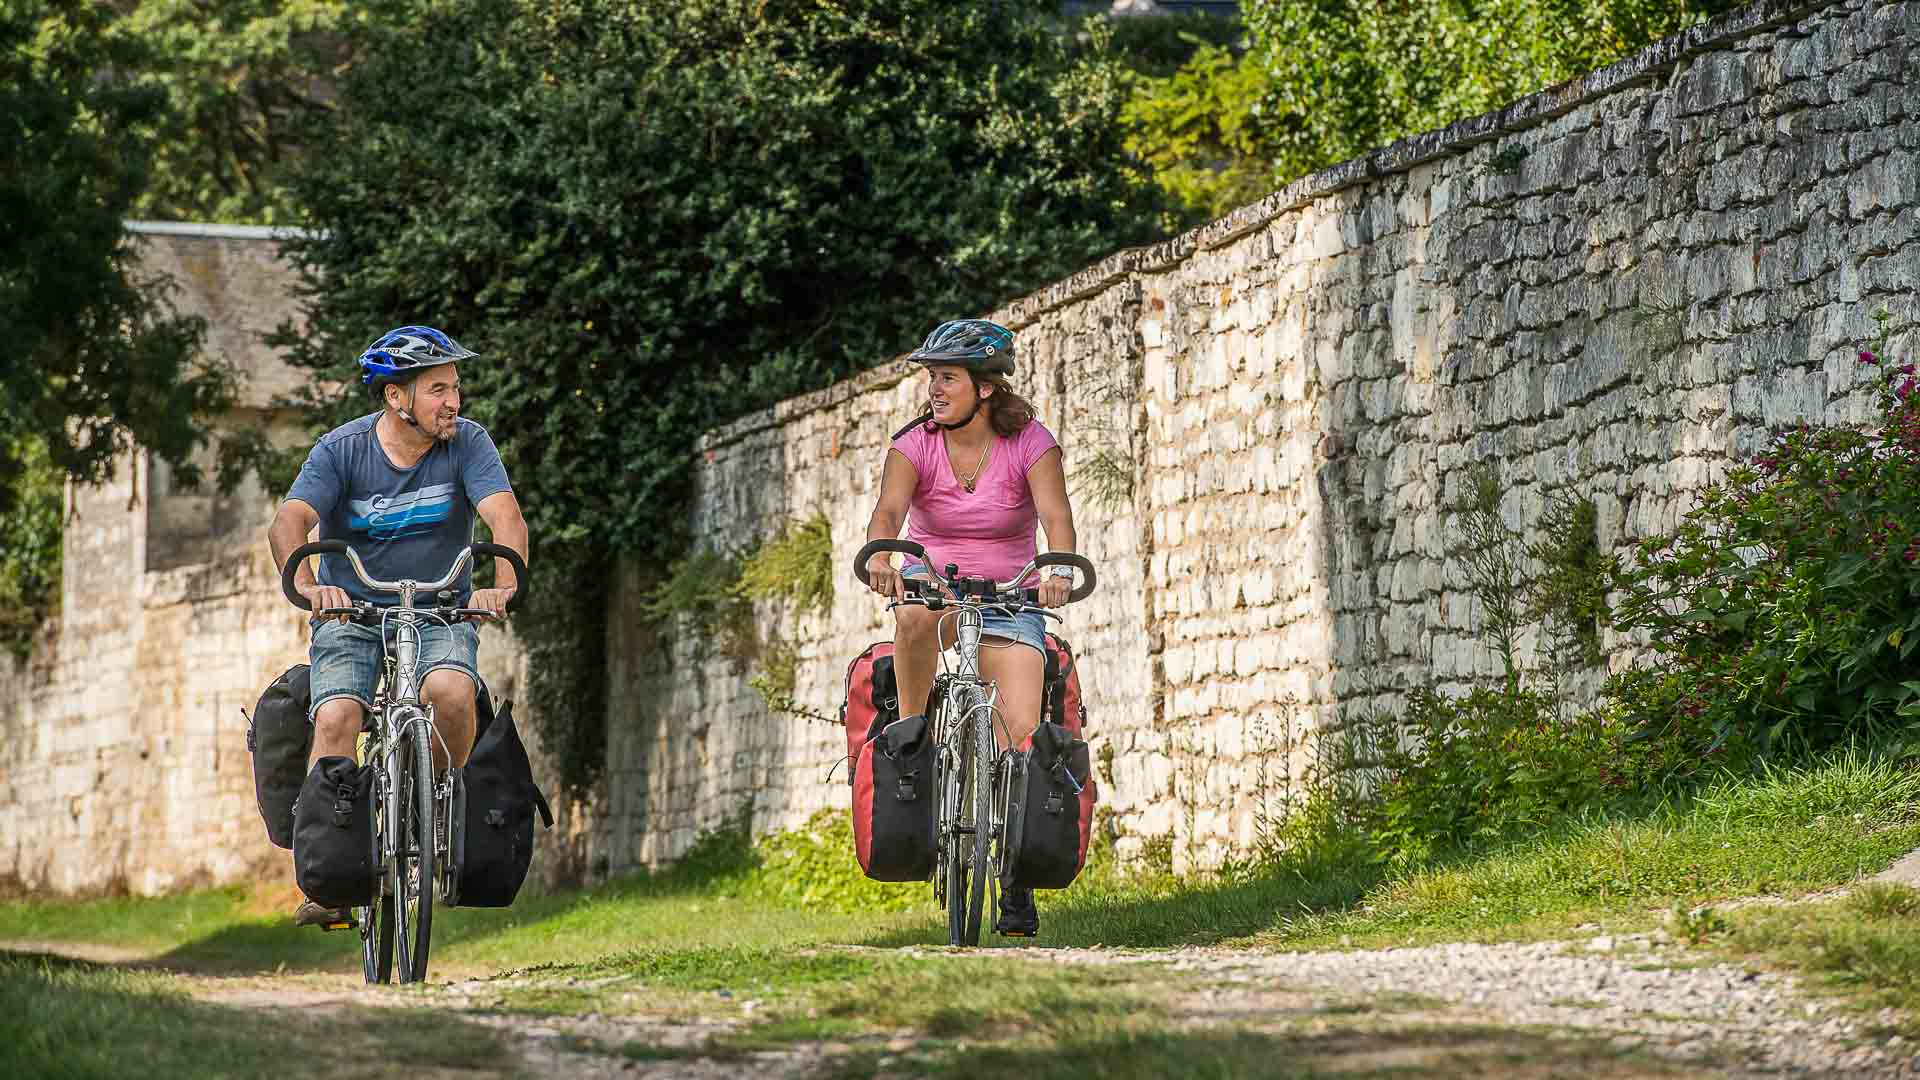 The Way of St James by bike